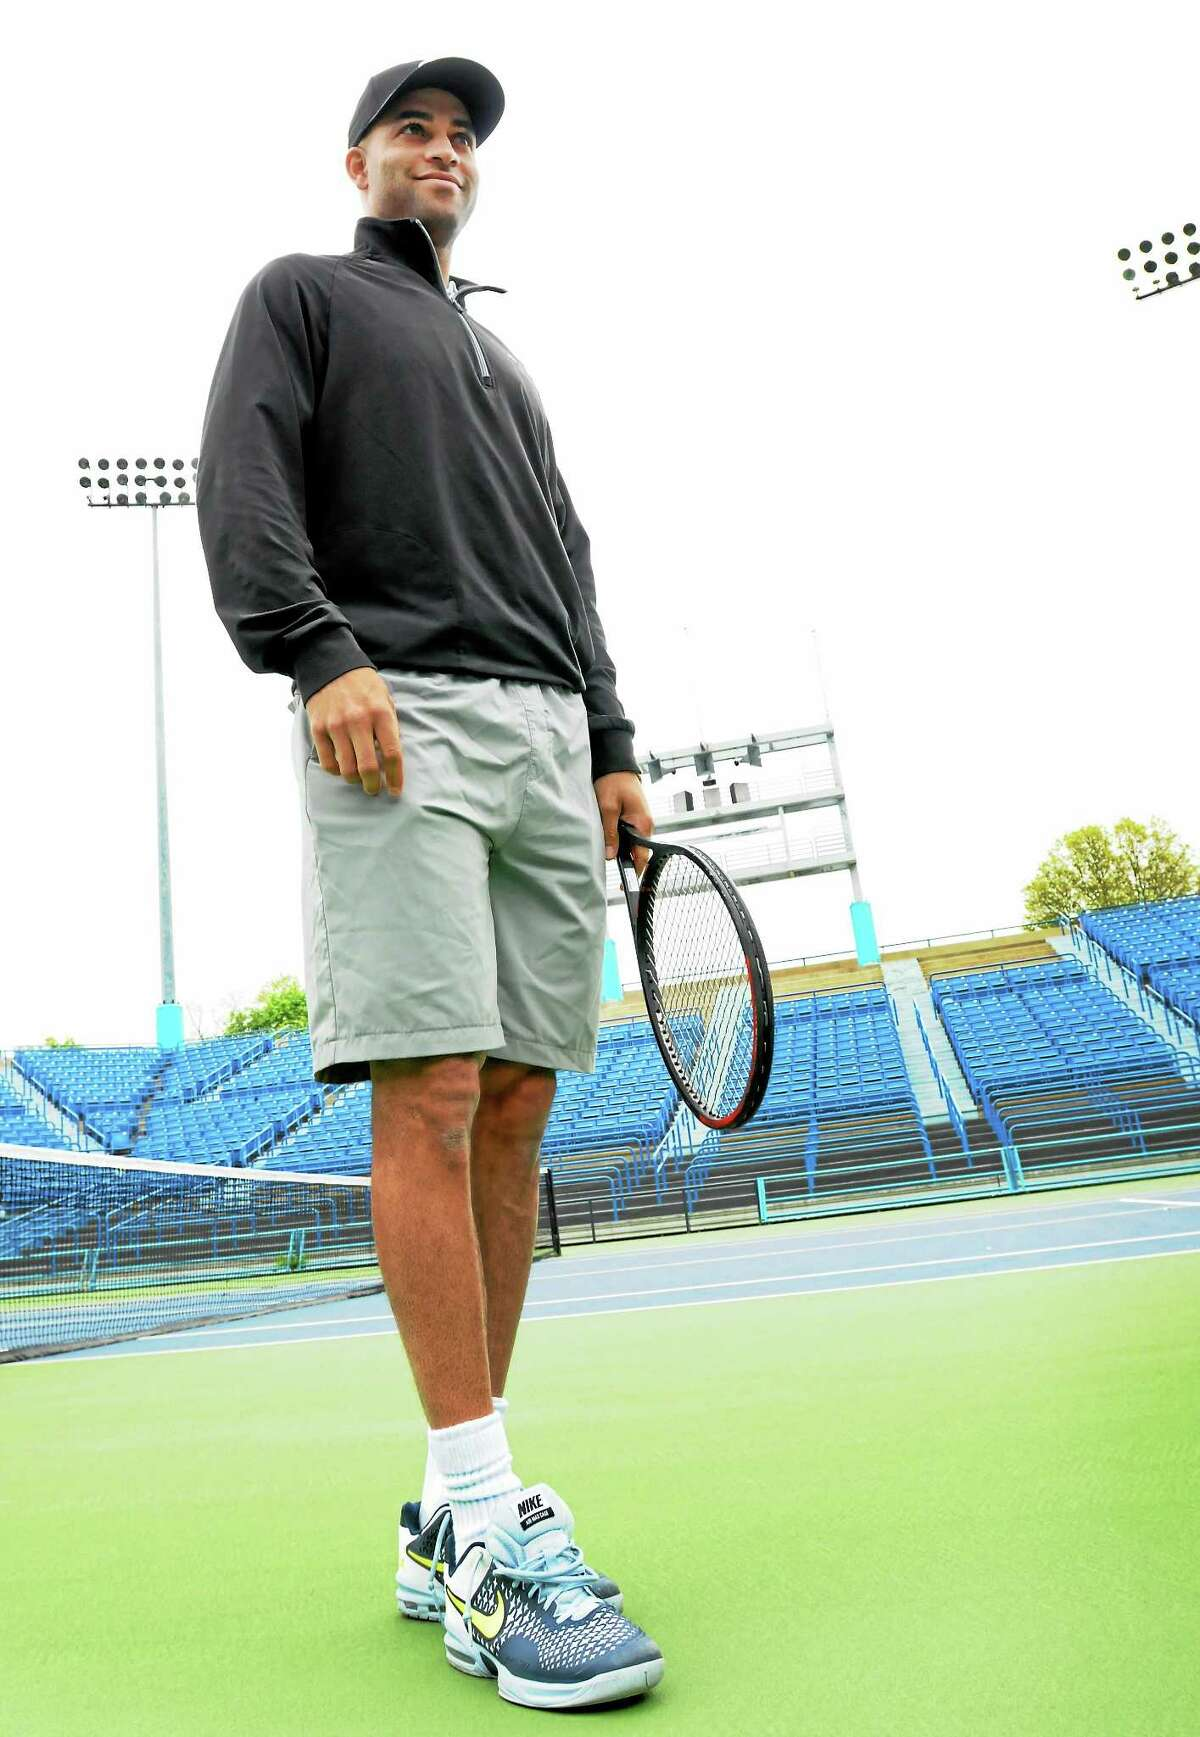 James Blake, a two-time New Haven Open champion and former top-five player, helped lead the 13th annual New Haven Open Free Lesson on Thursday at Yale's Cullman Center.